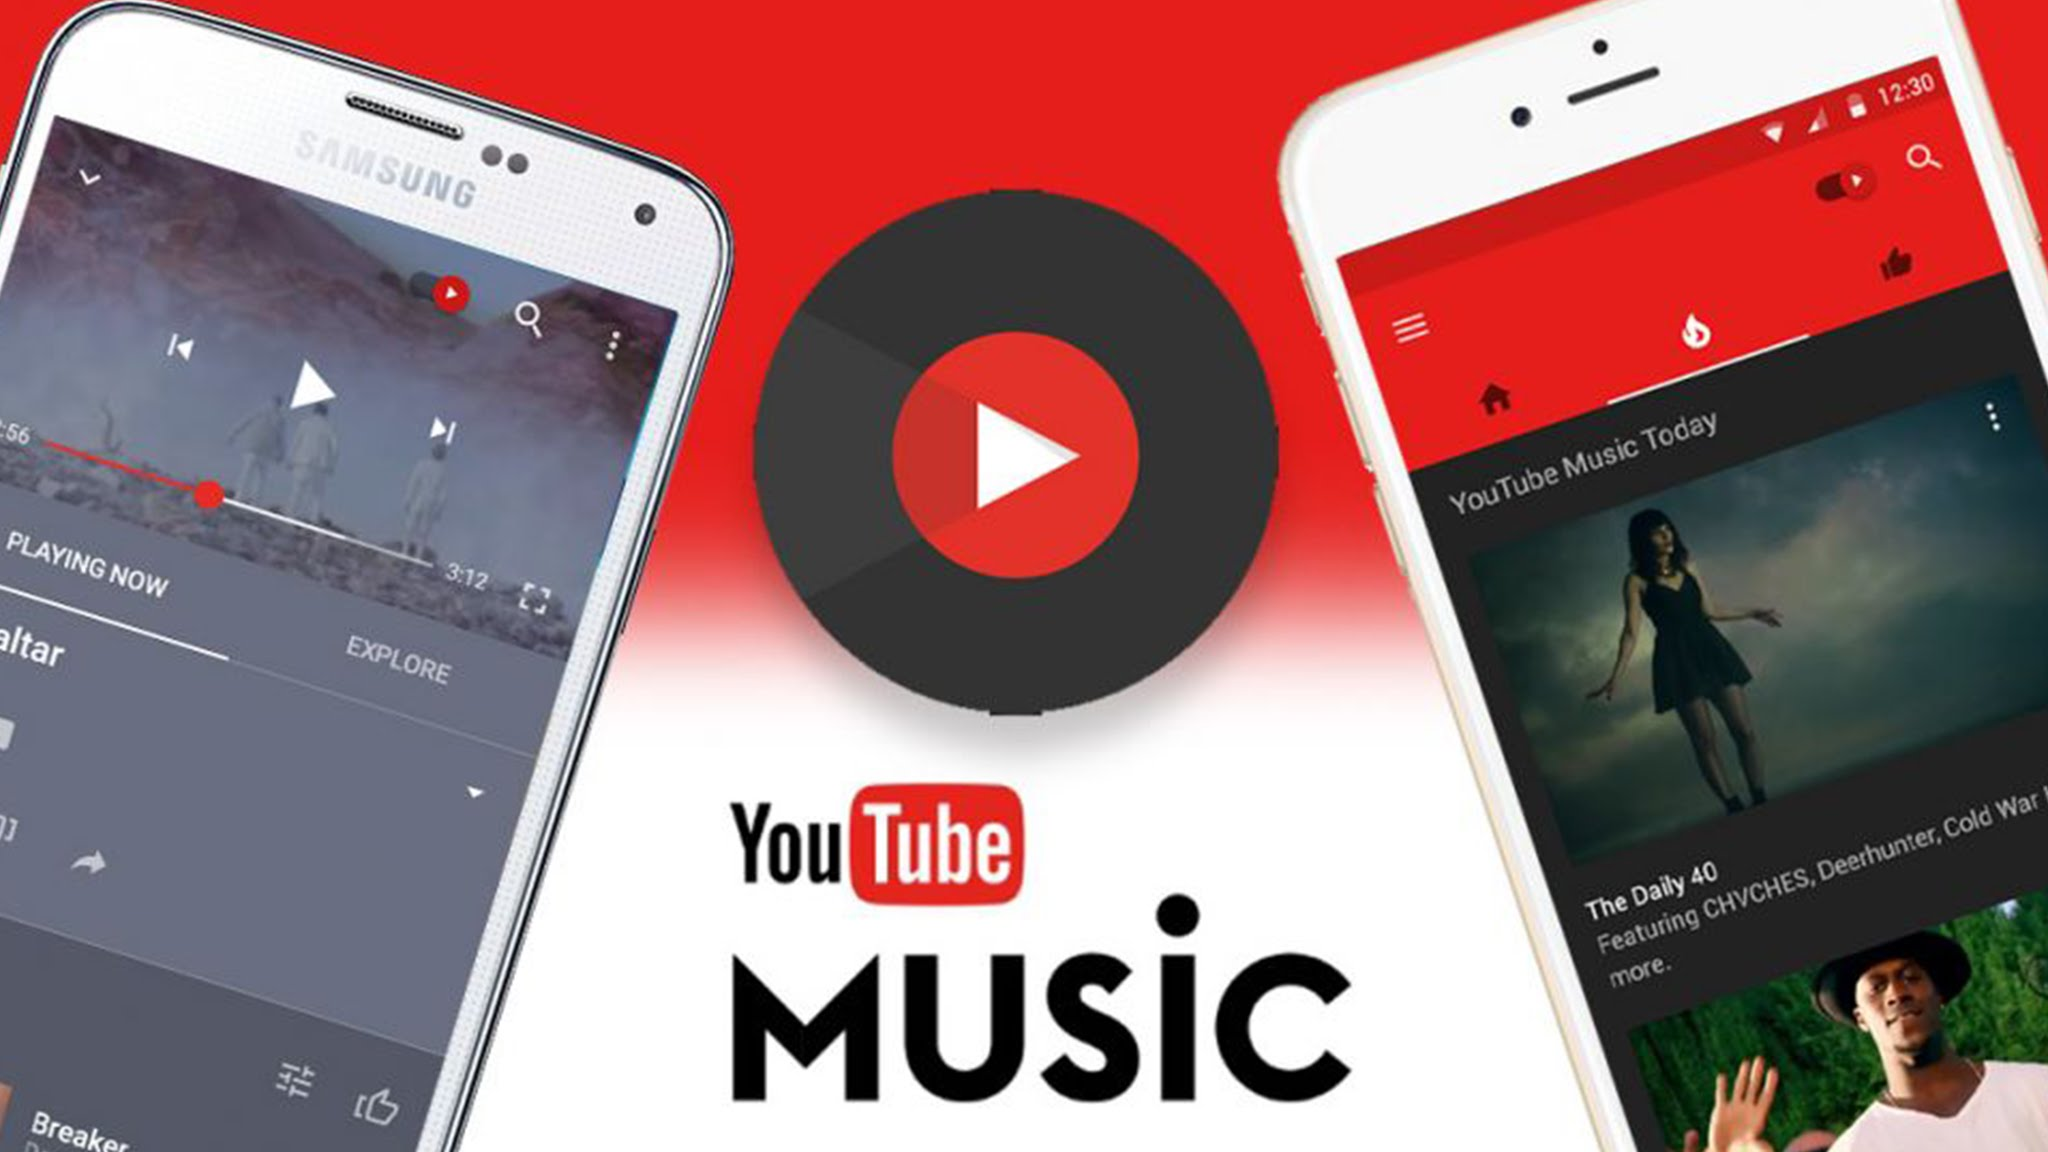 El talón de Aquiles de YouTube Music